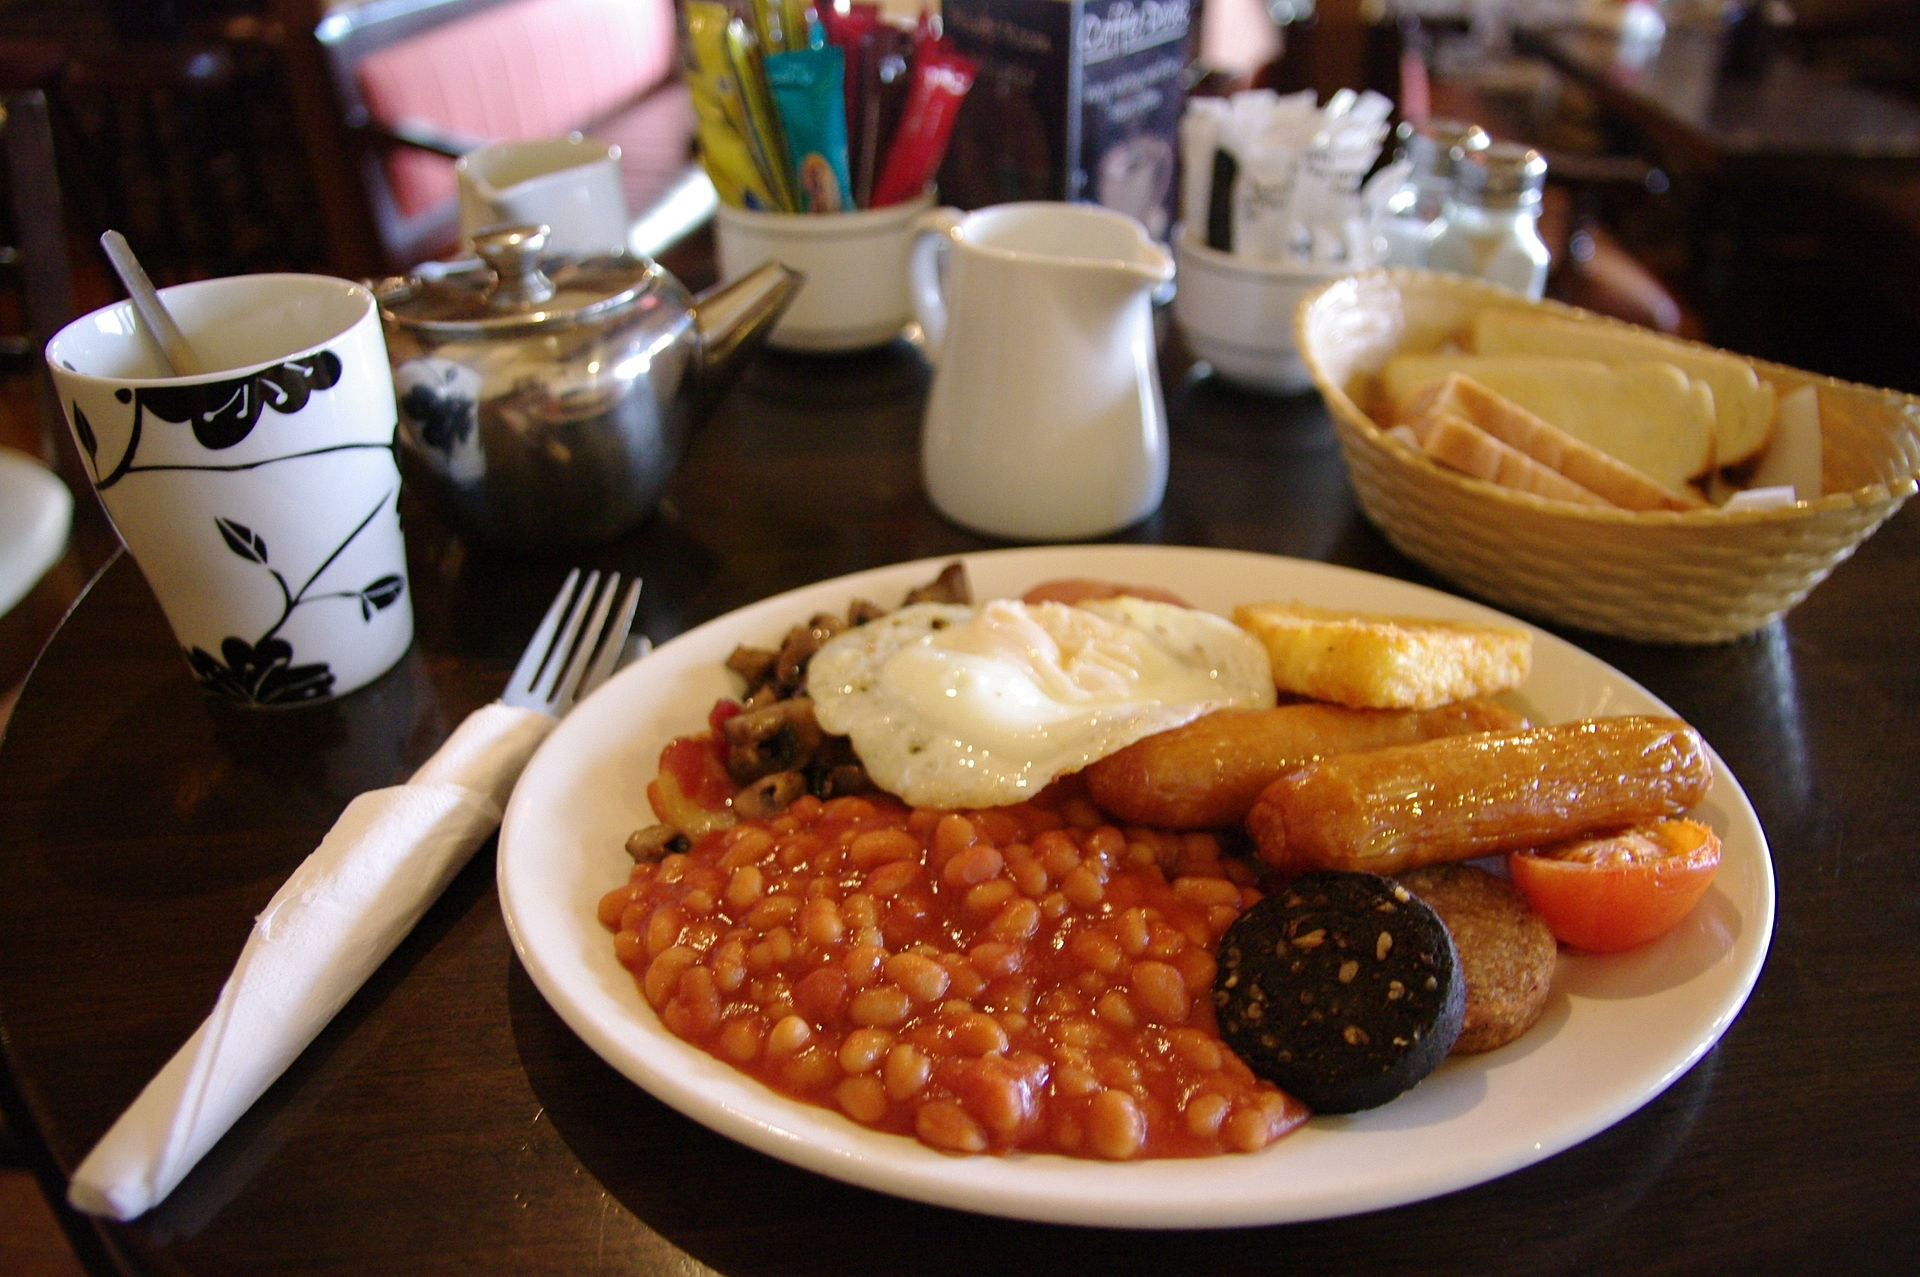 https://upload.wikimedia.org/wikipedia/commons/thumb/5/50/Full_irish_breakfast.jpg/1920px-Full_irish_breakfast.jpg